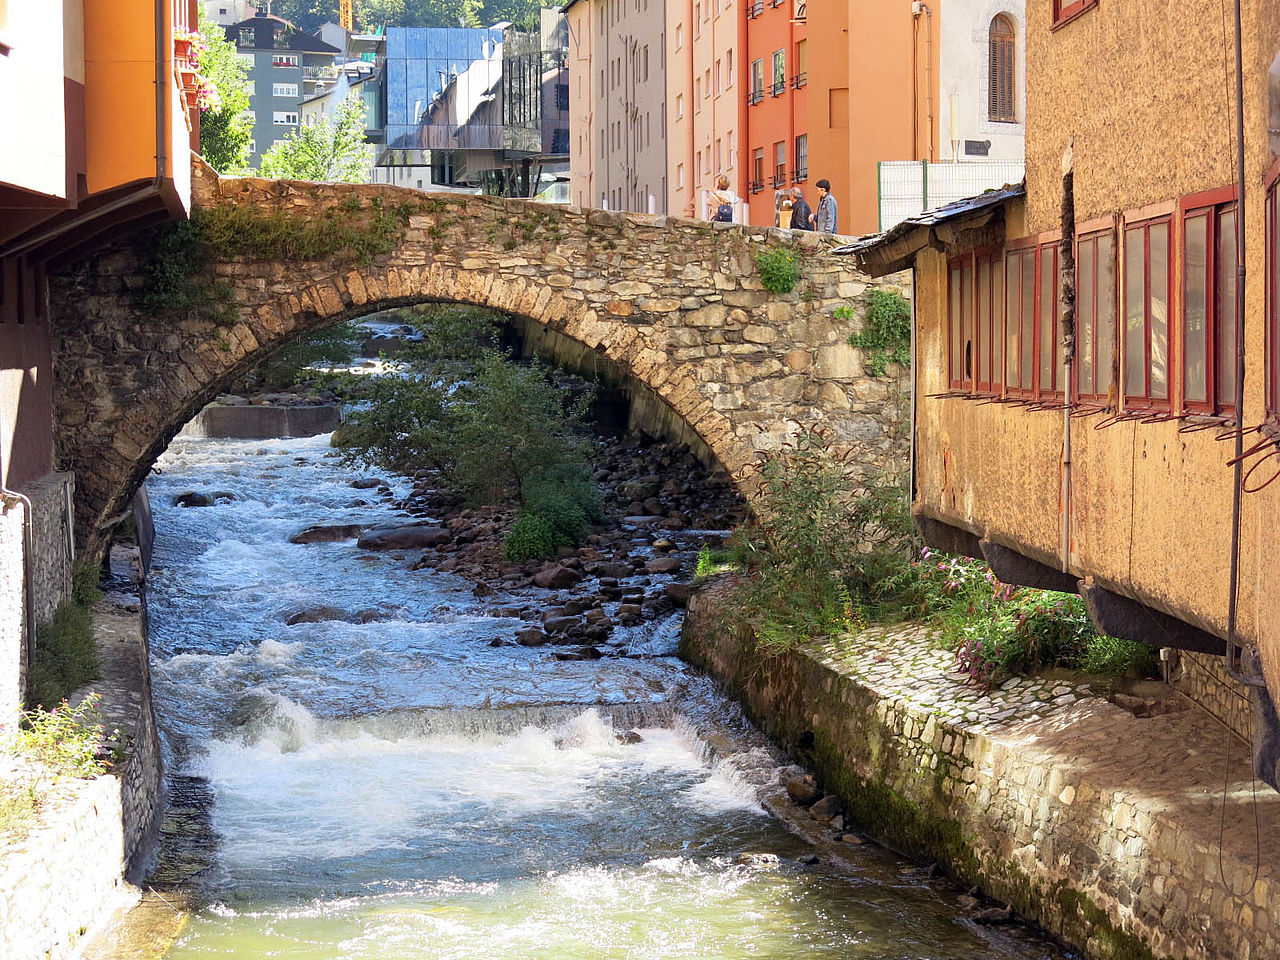 Pont d'Engordany, on the Valira